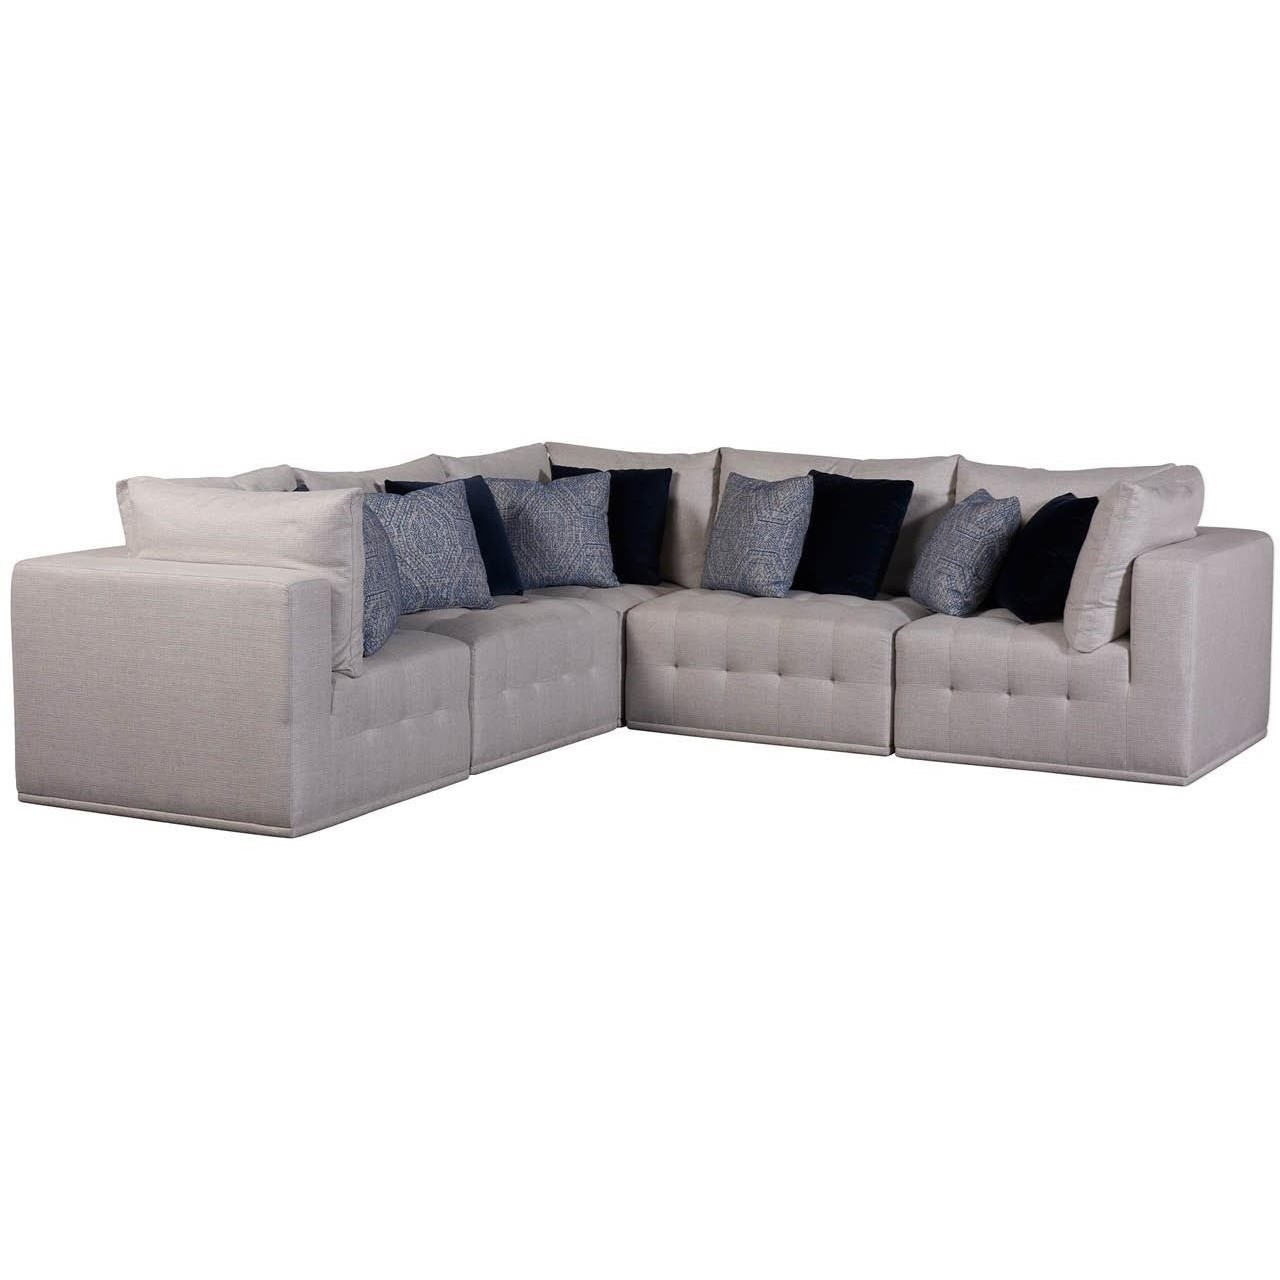 Donovan 5-Piece Sectional by Universal at Zak's Home